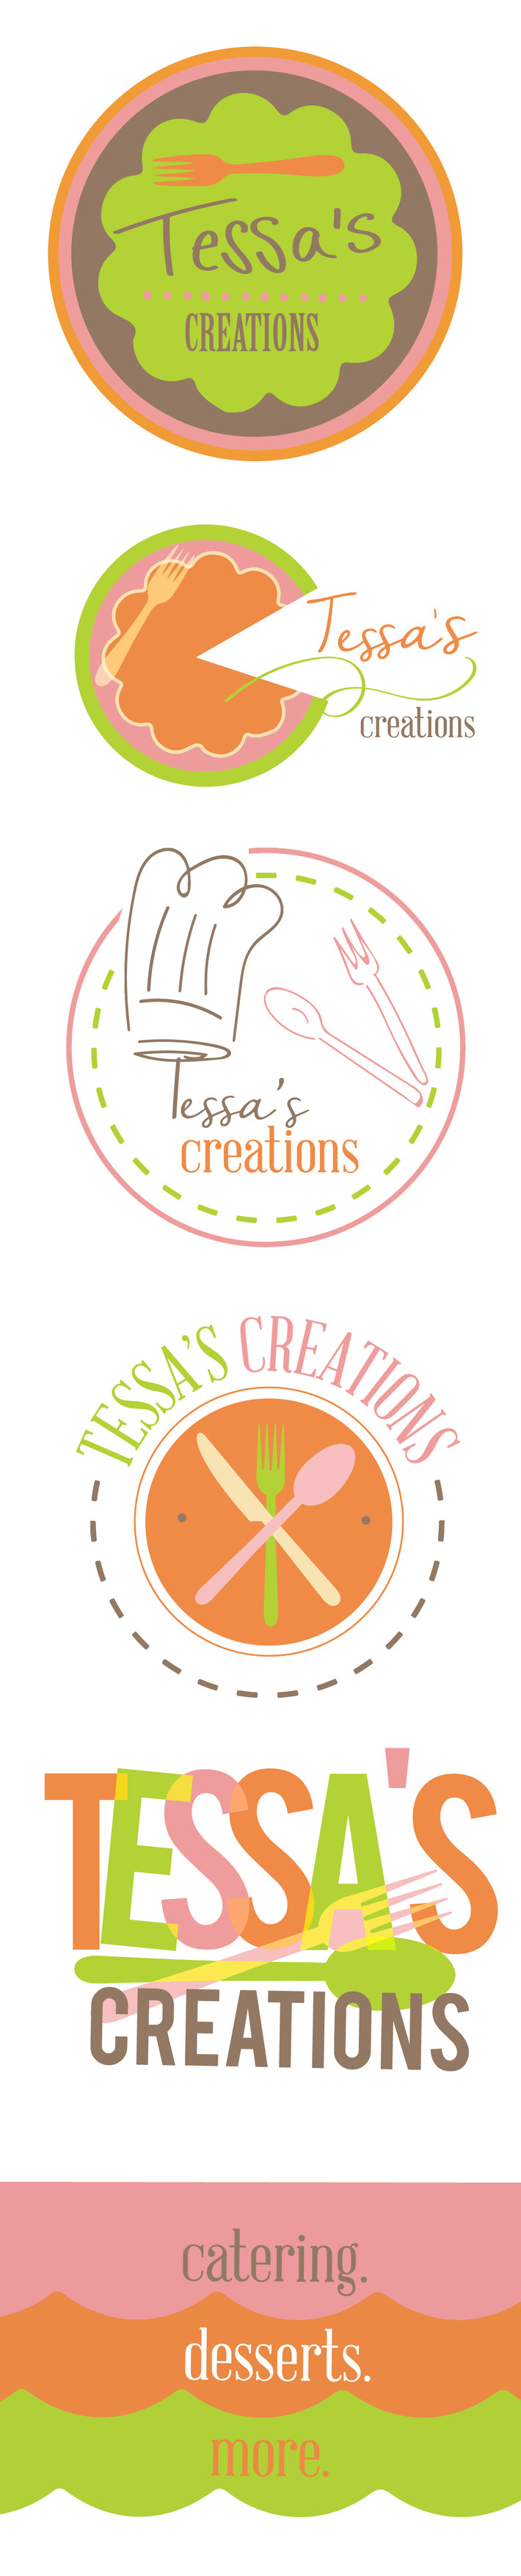 Logo Concepts for baking, catering, food business